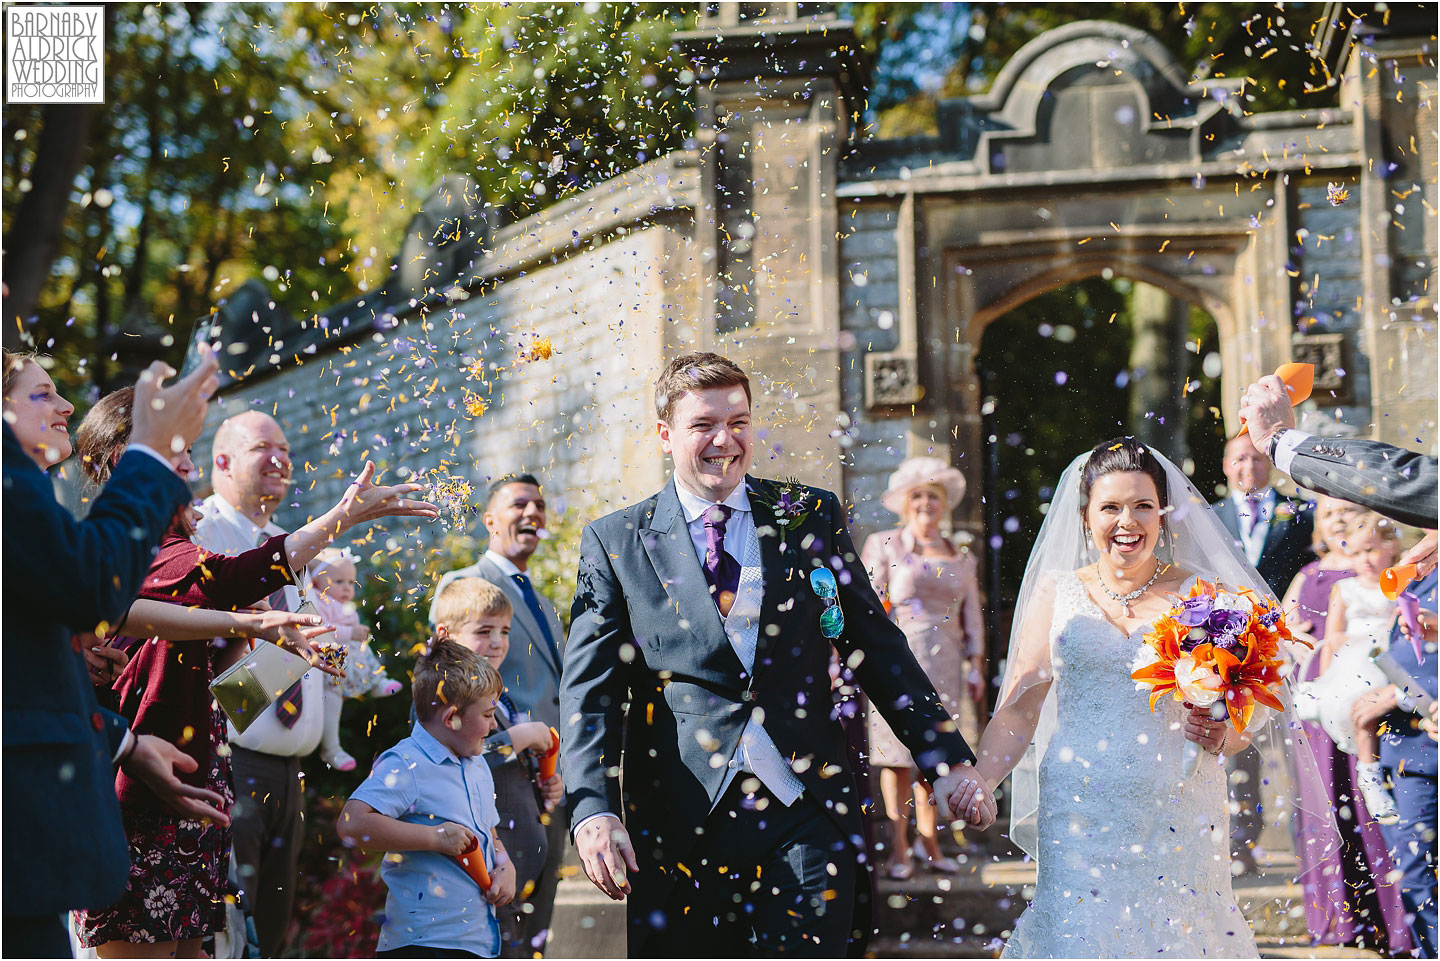 Amazing Confetti photo at Thornbridge Hall, Amazing Derbyshire Wedding Photos, Best Yorkshire Wedding Photos 2018